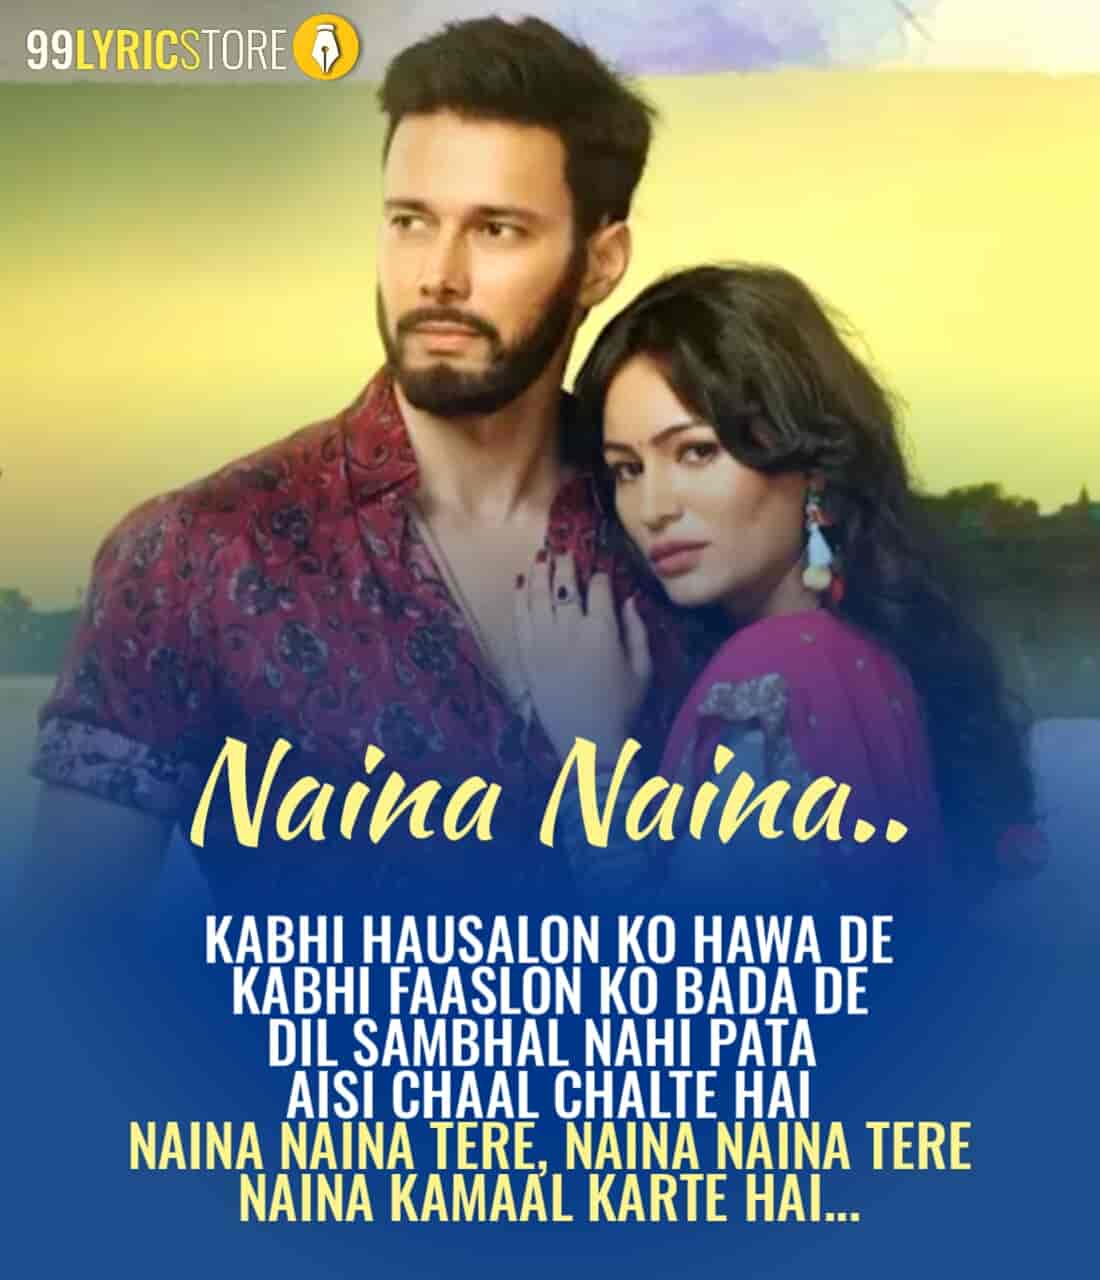 Naina Naina Hindi Song Sung by Nakul Chhawchharia